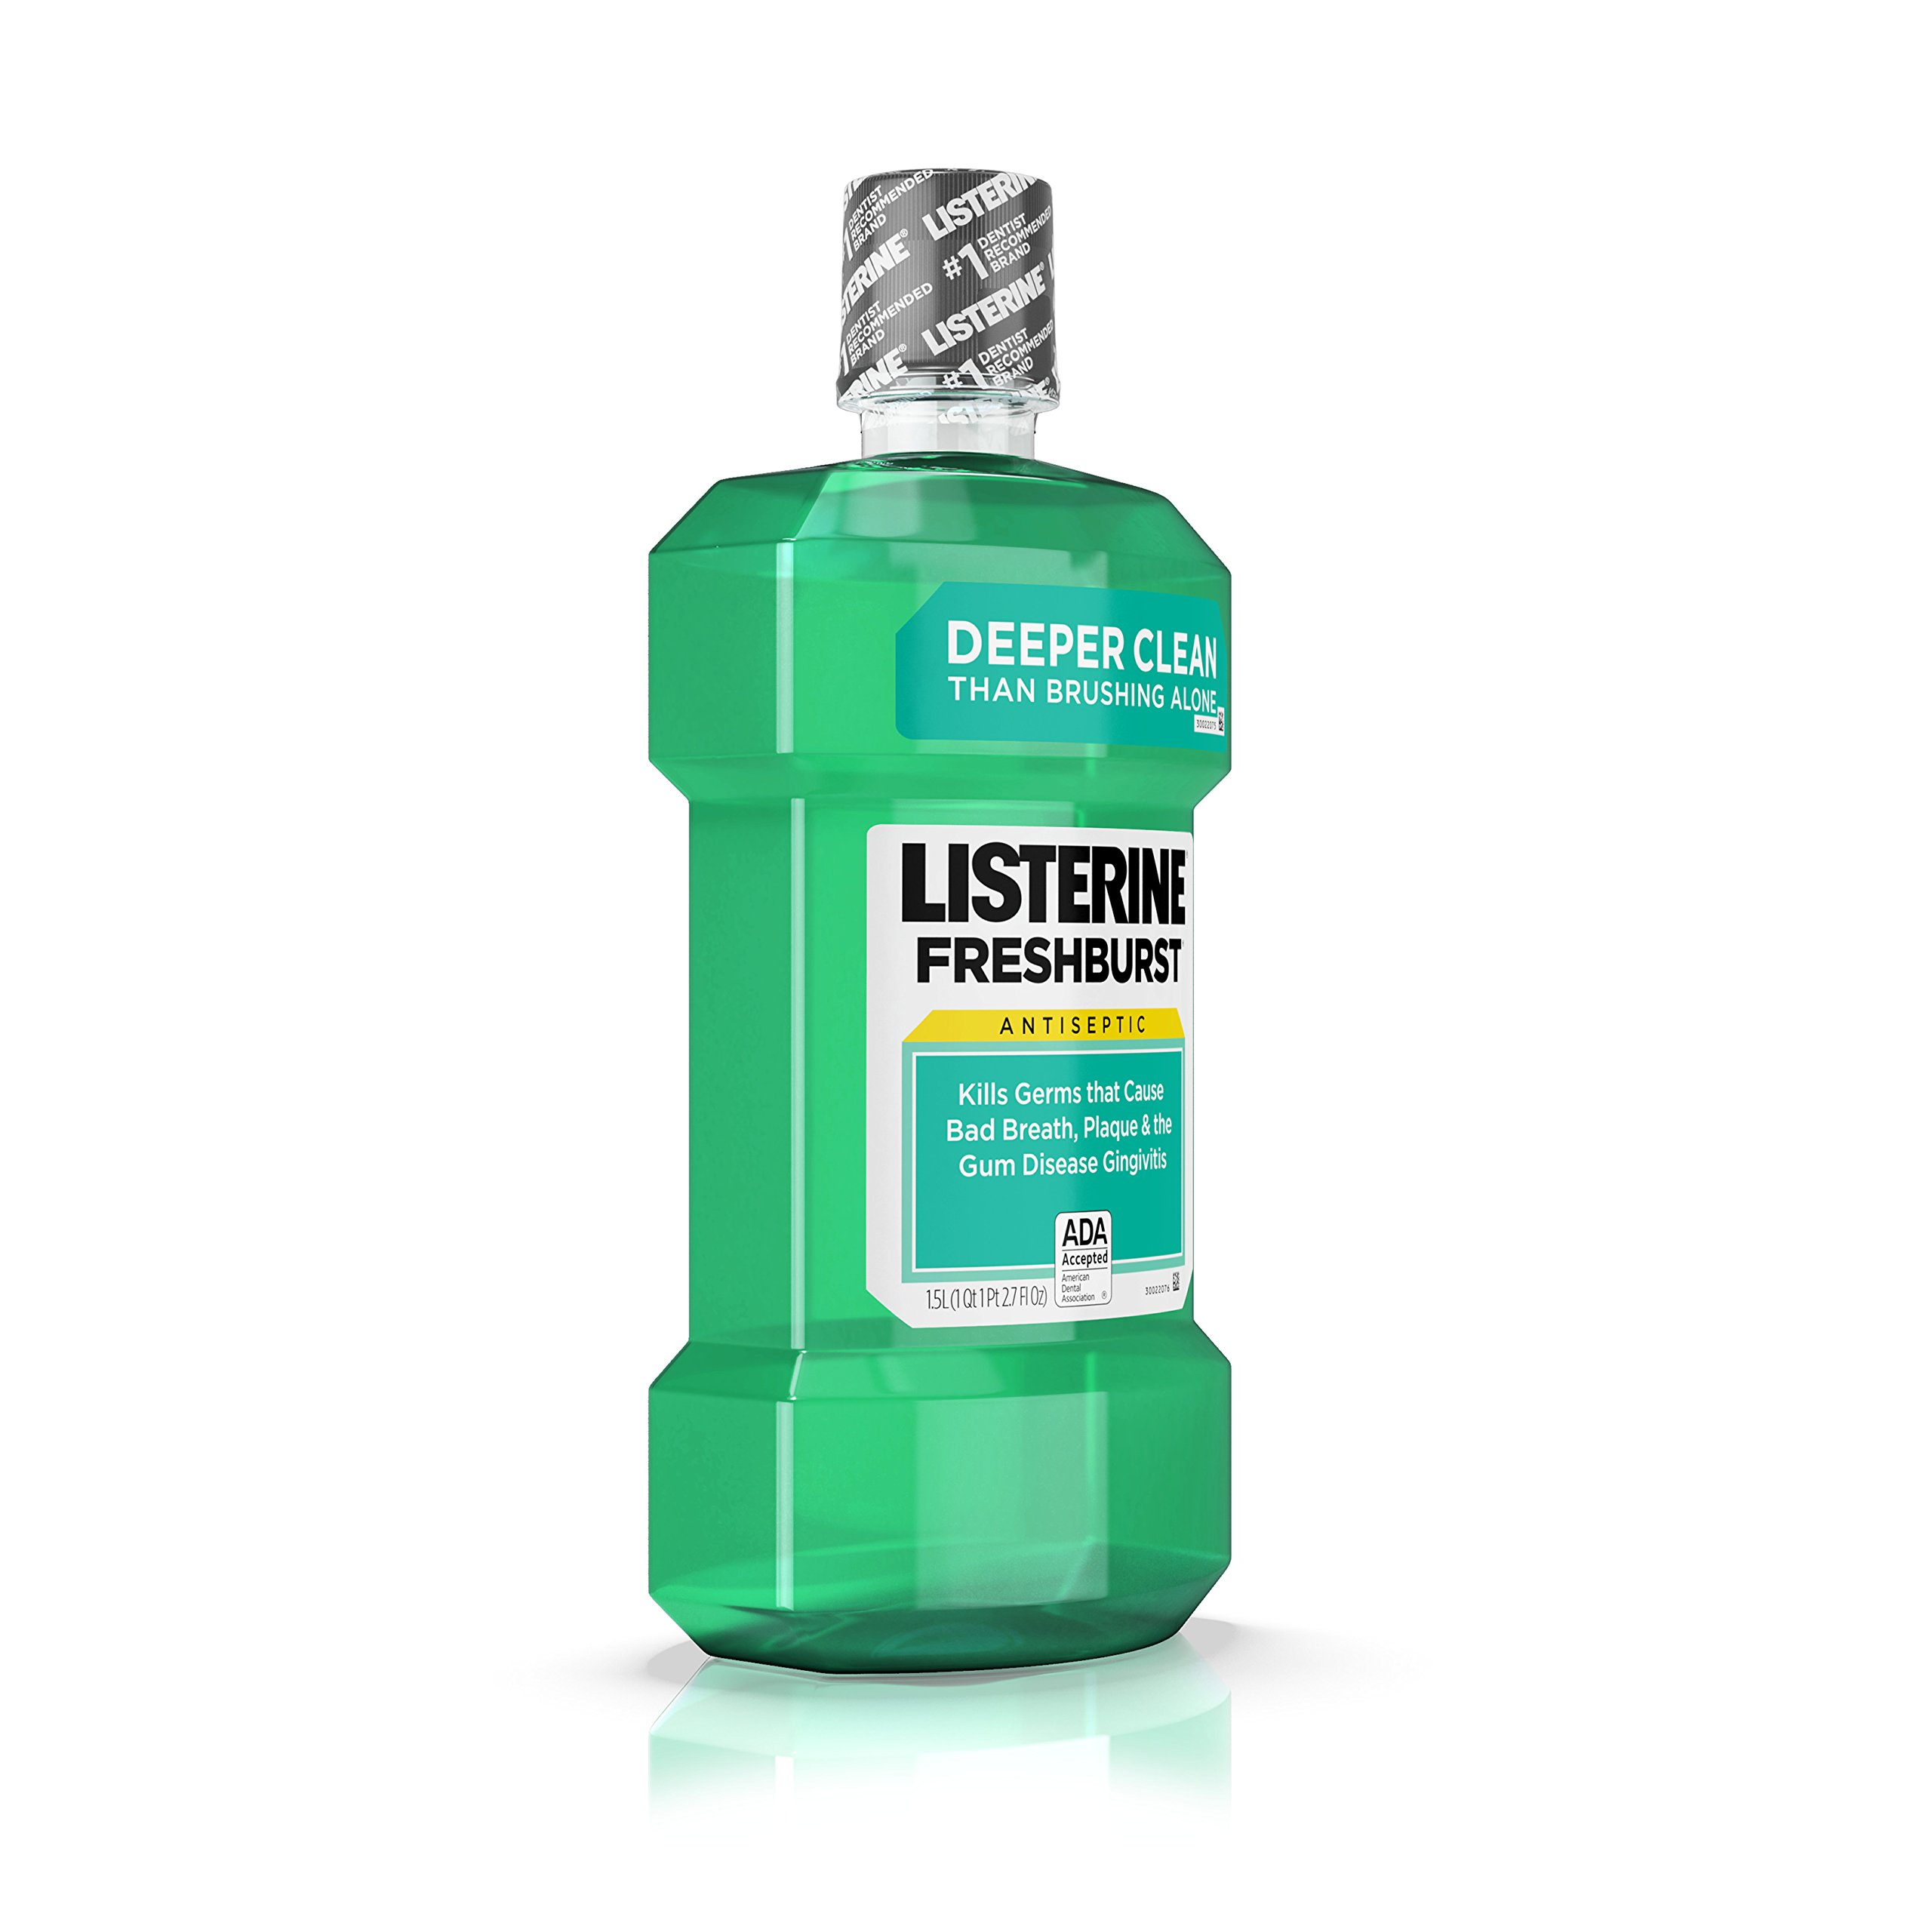 Listerine Freshburst Antiseptic Mouthwash For Bad Breath, 1.5 L, (Pack of 6) by Listerine (Image #4)